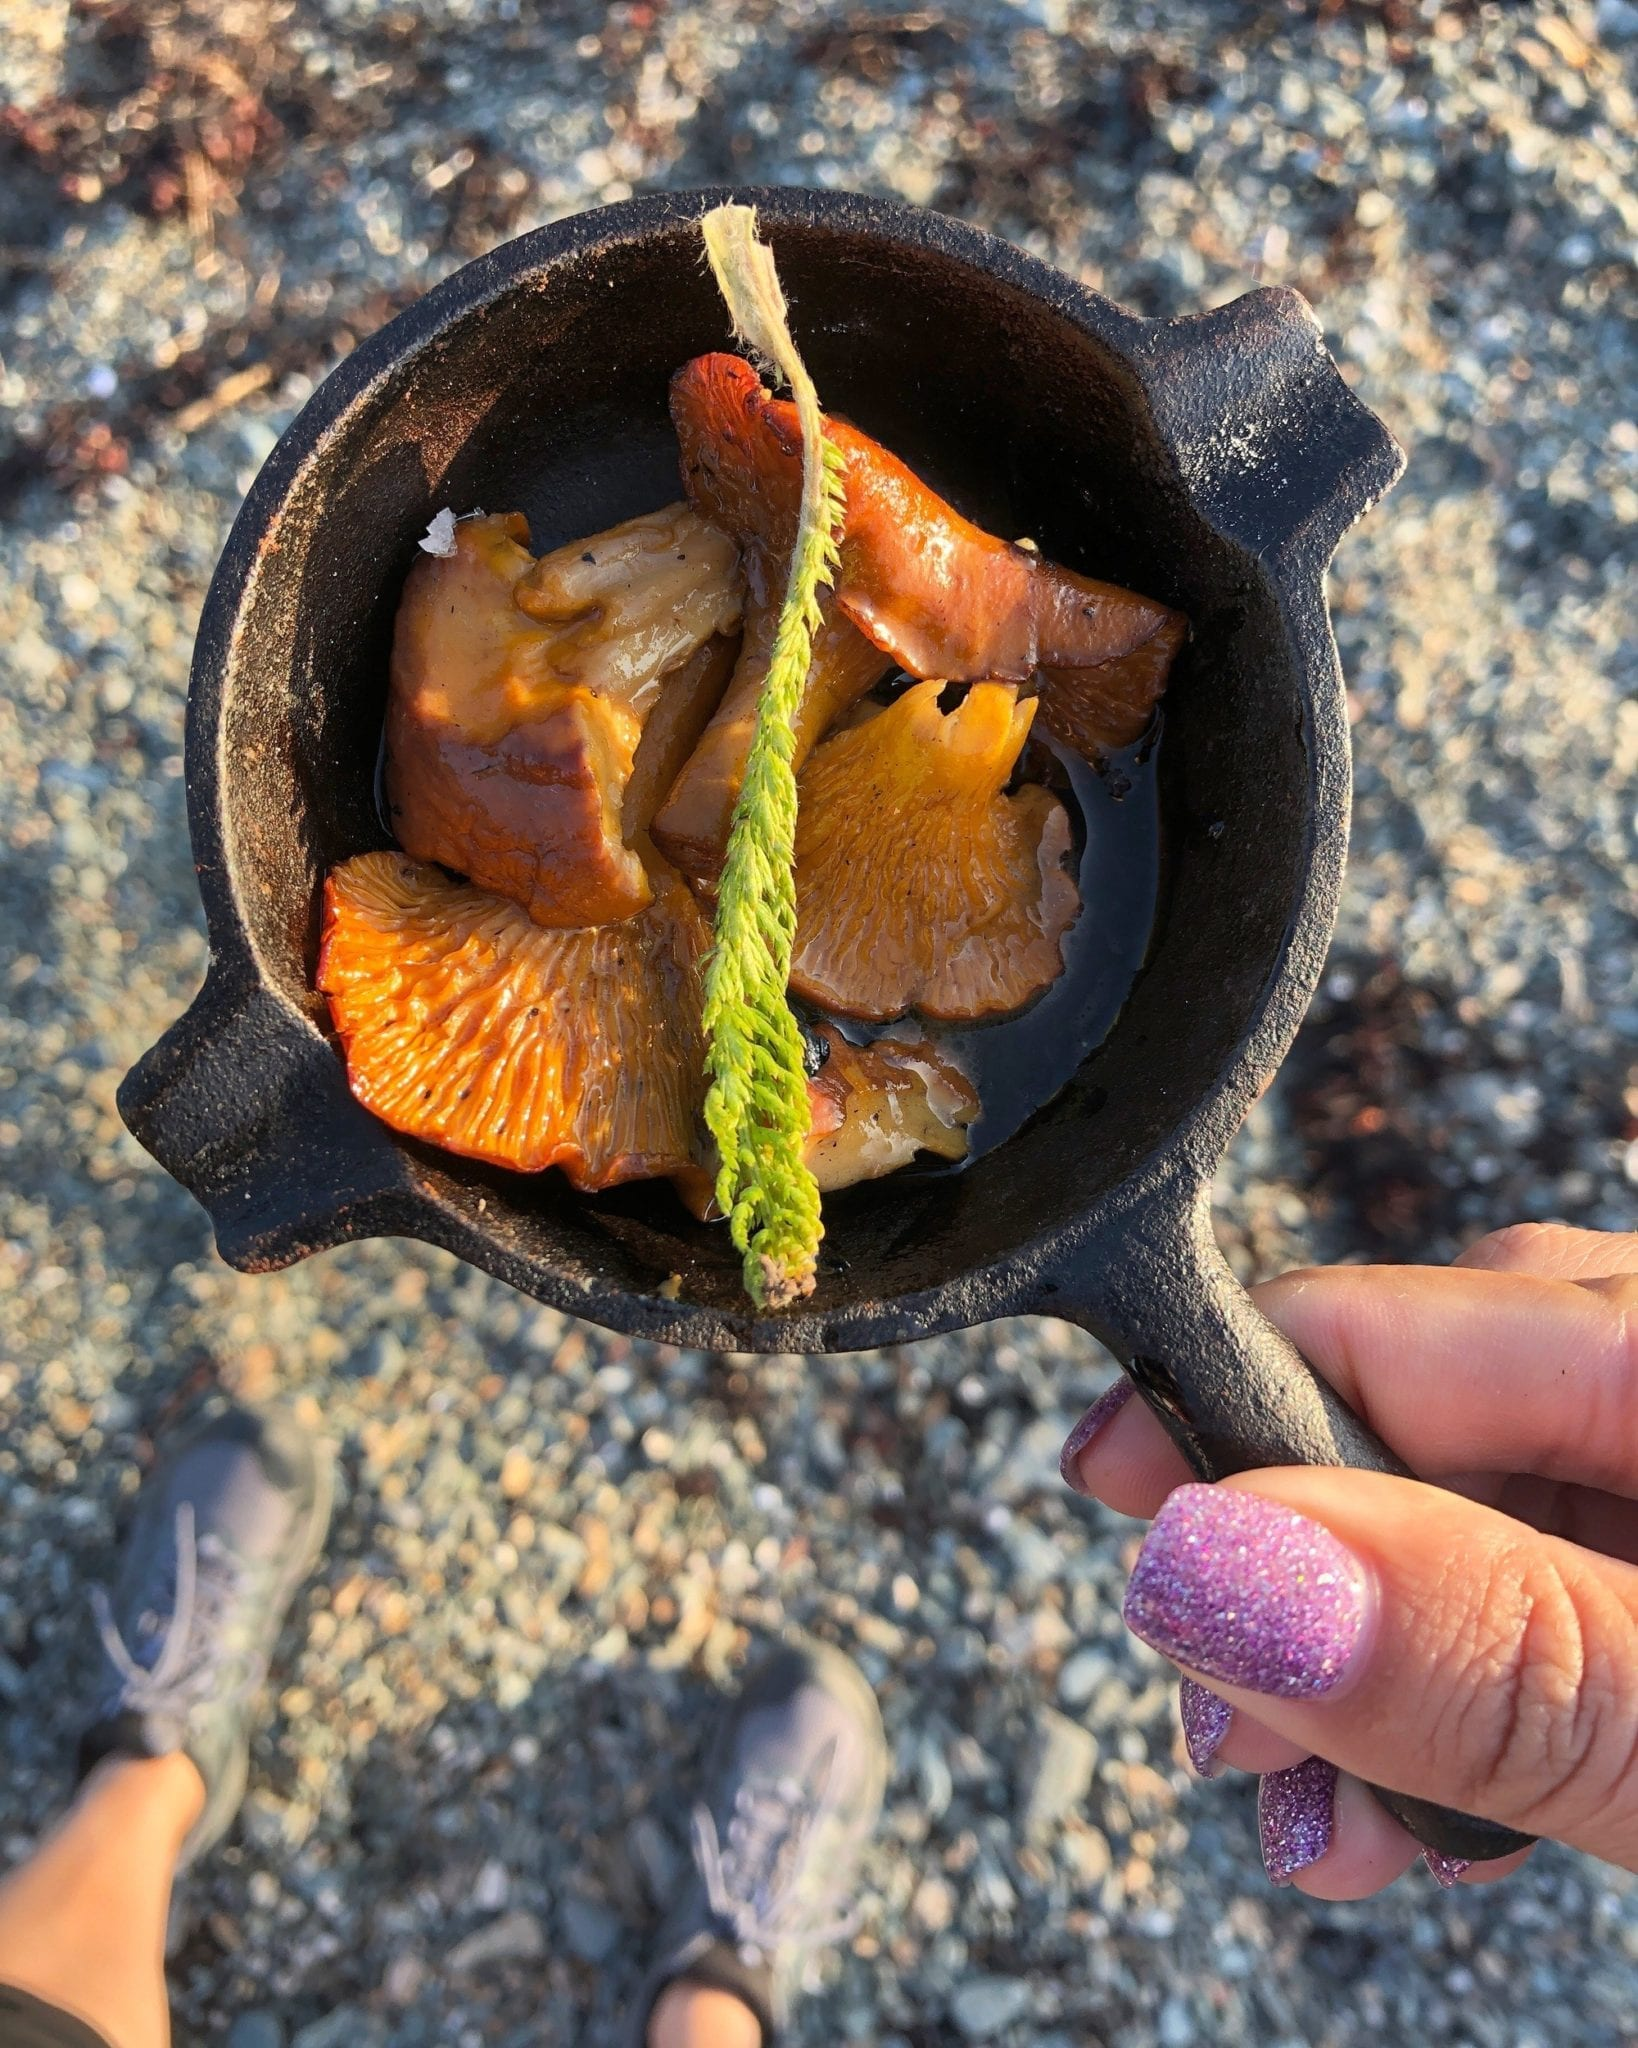 Kate holds a tiny cast iron skillet filled with chanterelle mushrooms and a spring of fresh green herbs. Beneath her you can see the sand and her purple hiking shoes,